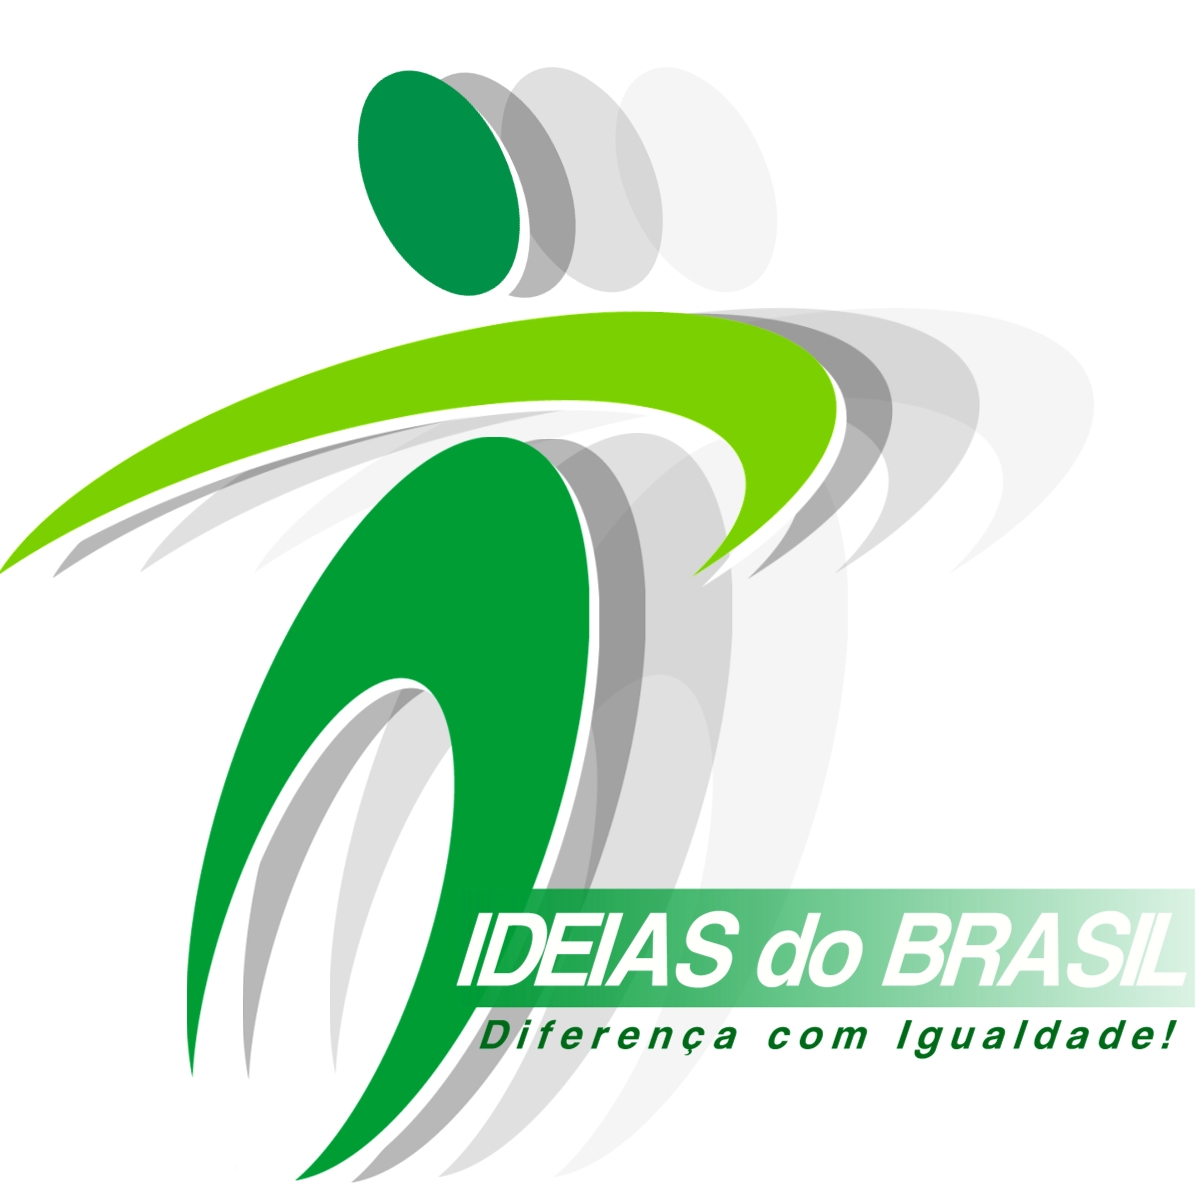 Logotipo do Instituto IDEIAS do BRASIL